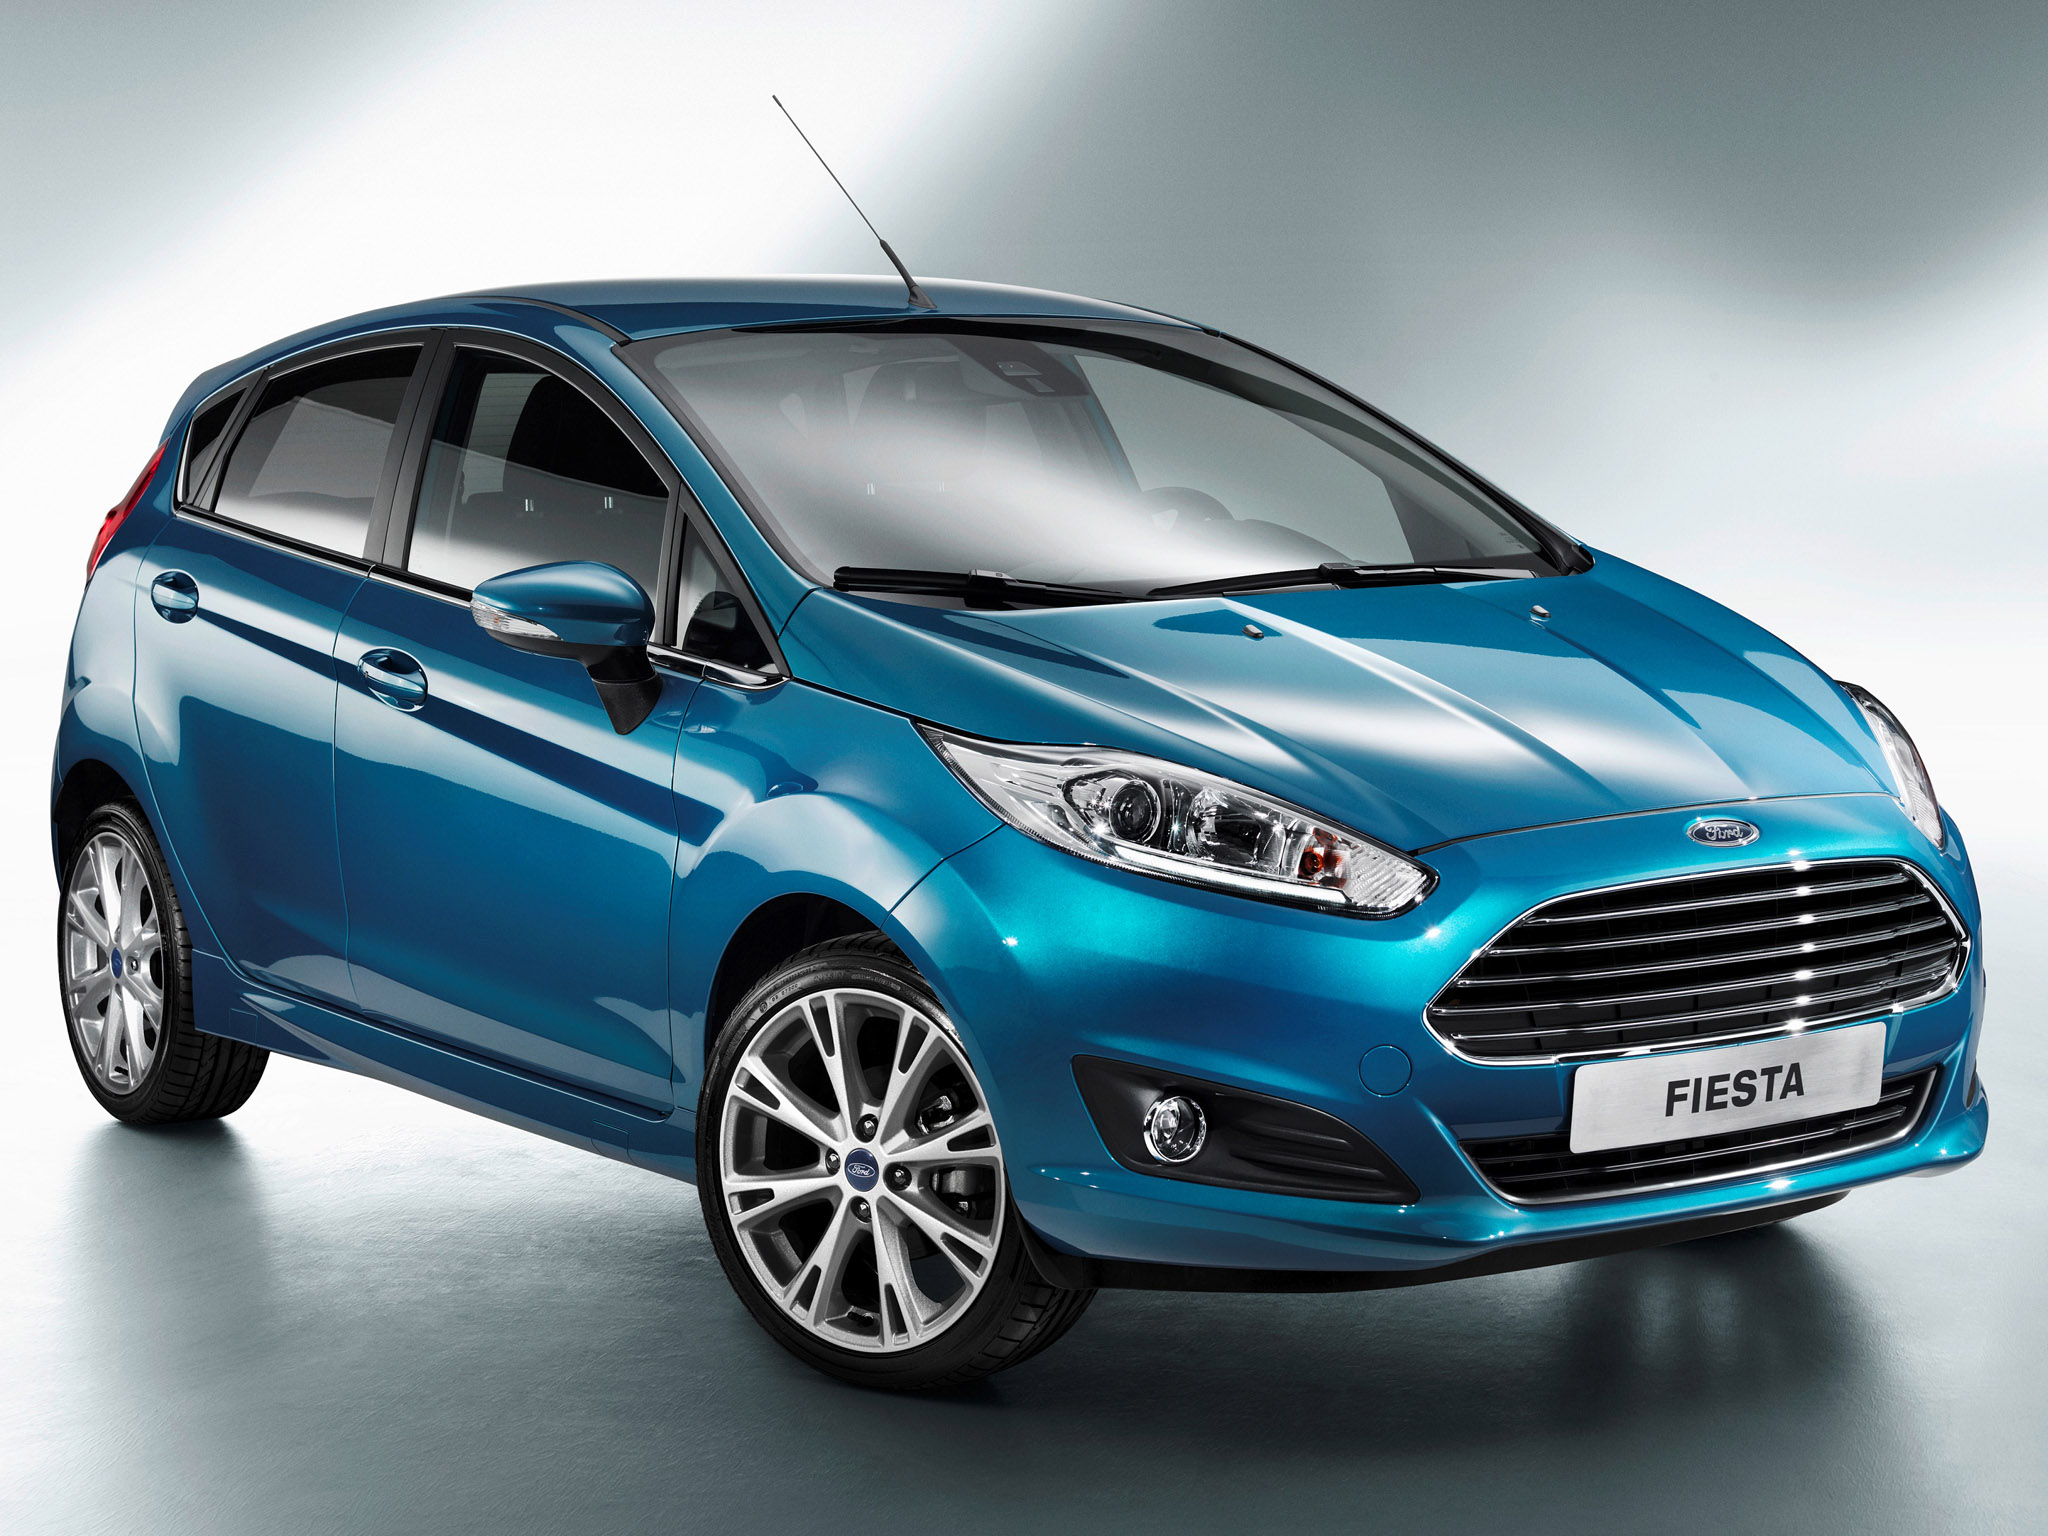 ford fiesta 5 door 2013 ford fiesta 5 door 2013 photo 05 car in pictures car photo gallery. Black Bedroom Furniture Sets. Home Design Ideas